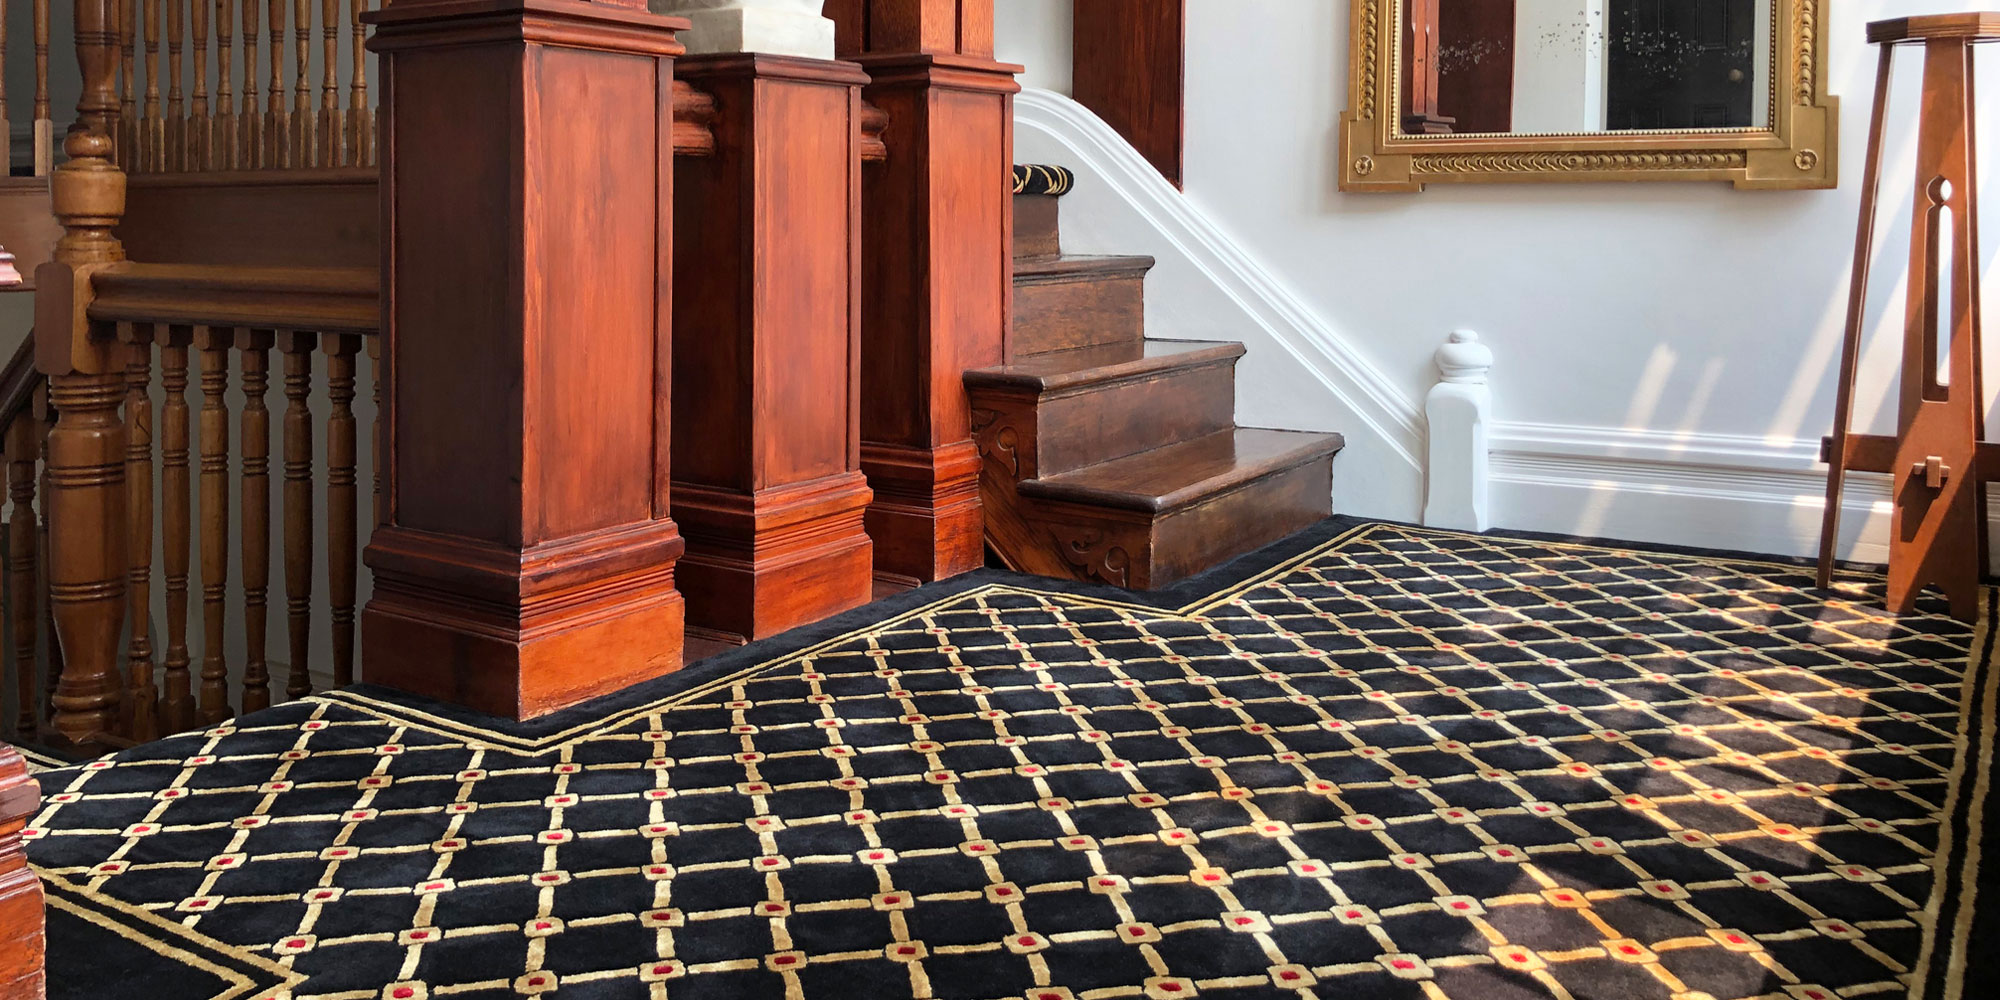 Do you sell carpet - wall to wall?